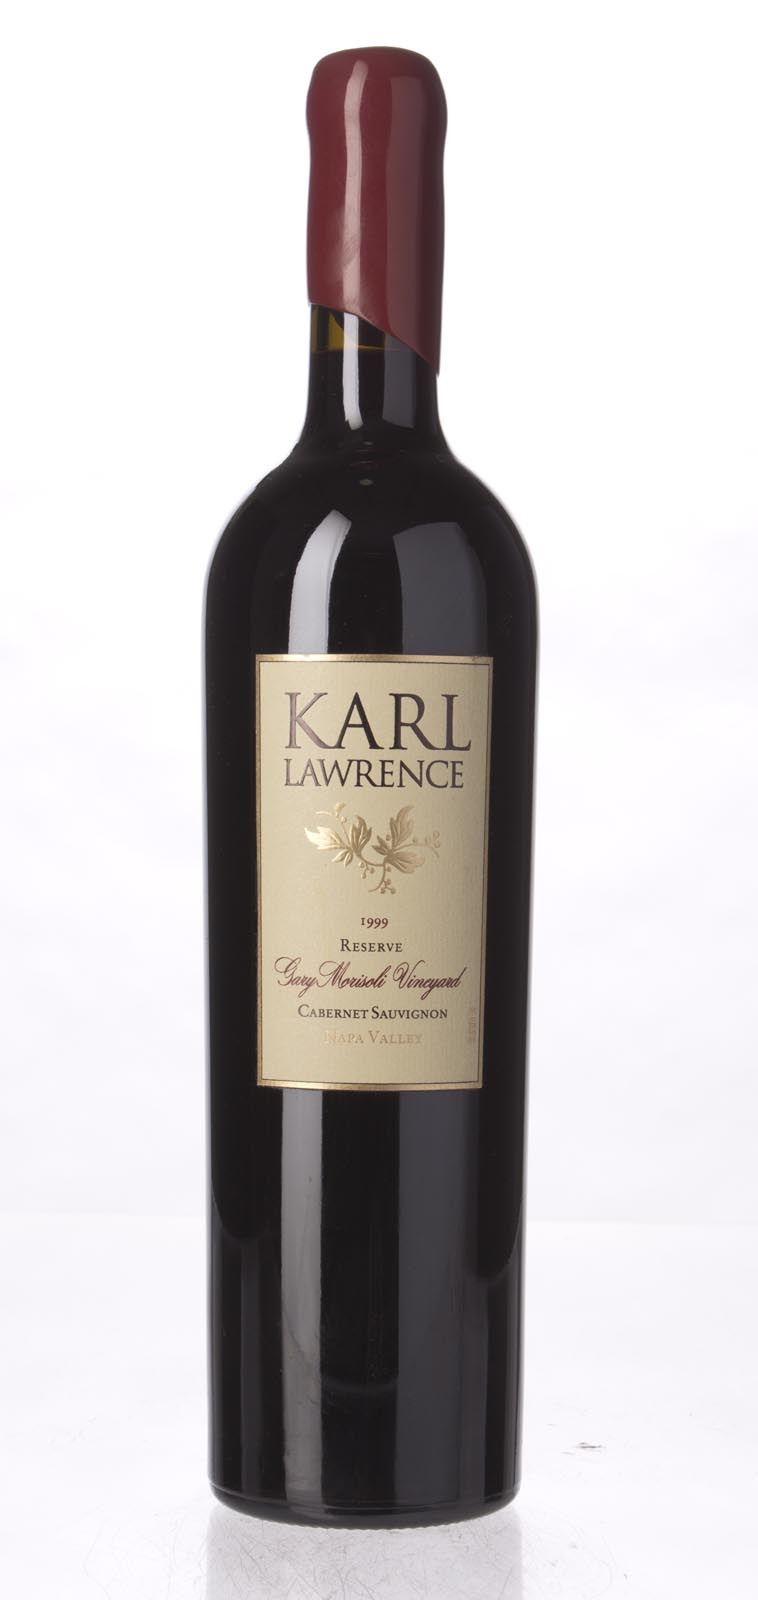 Karl Lawrence Cabernet Sauvignon Reserve Gary Morisoli Vineyard 1999, 750mL () from The BPW - Merchants of rare and fine wines.